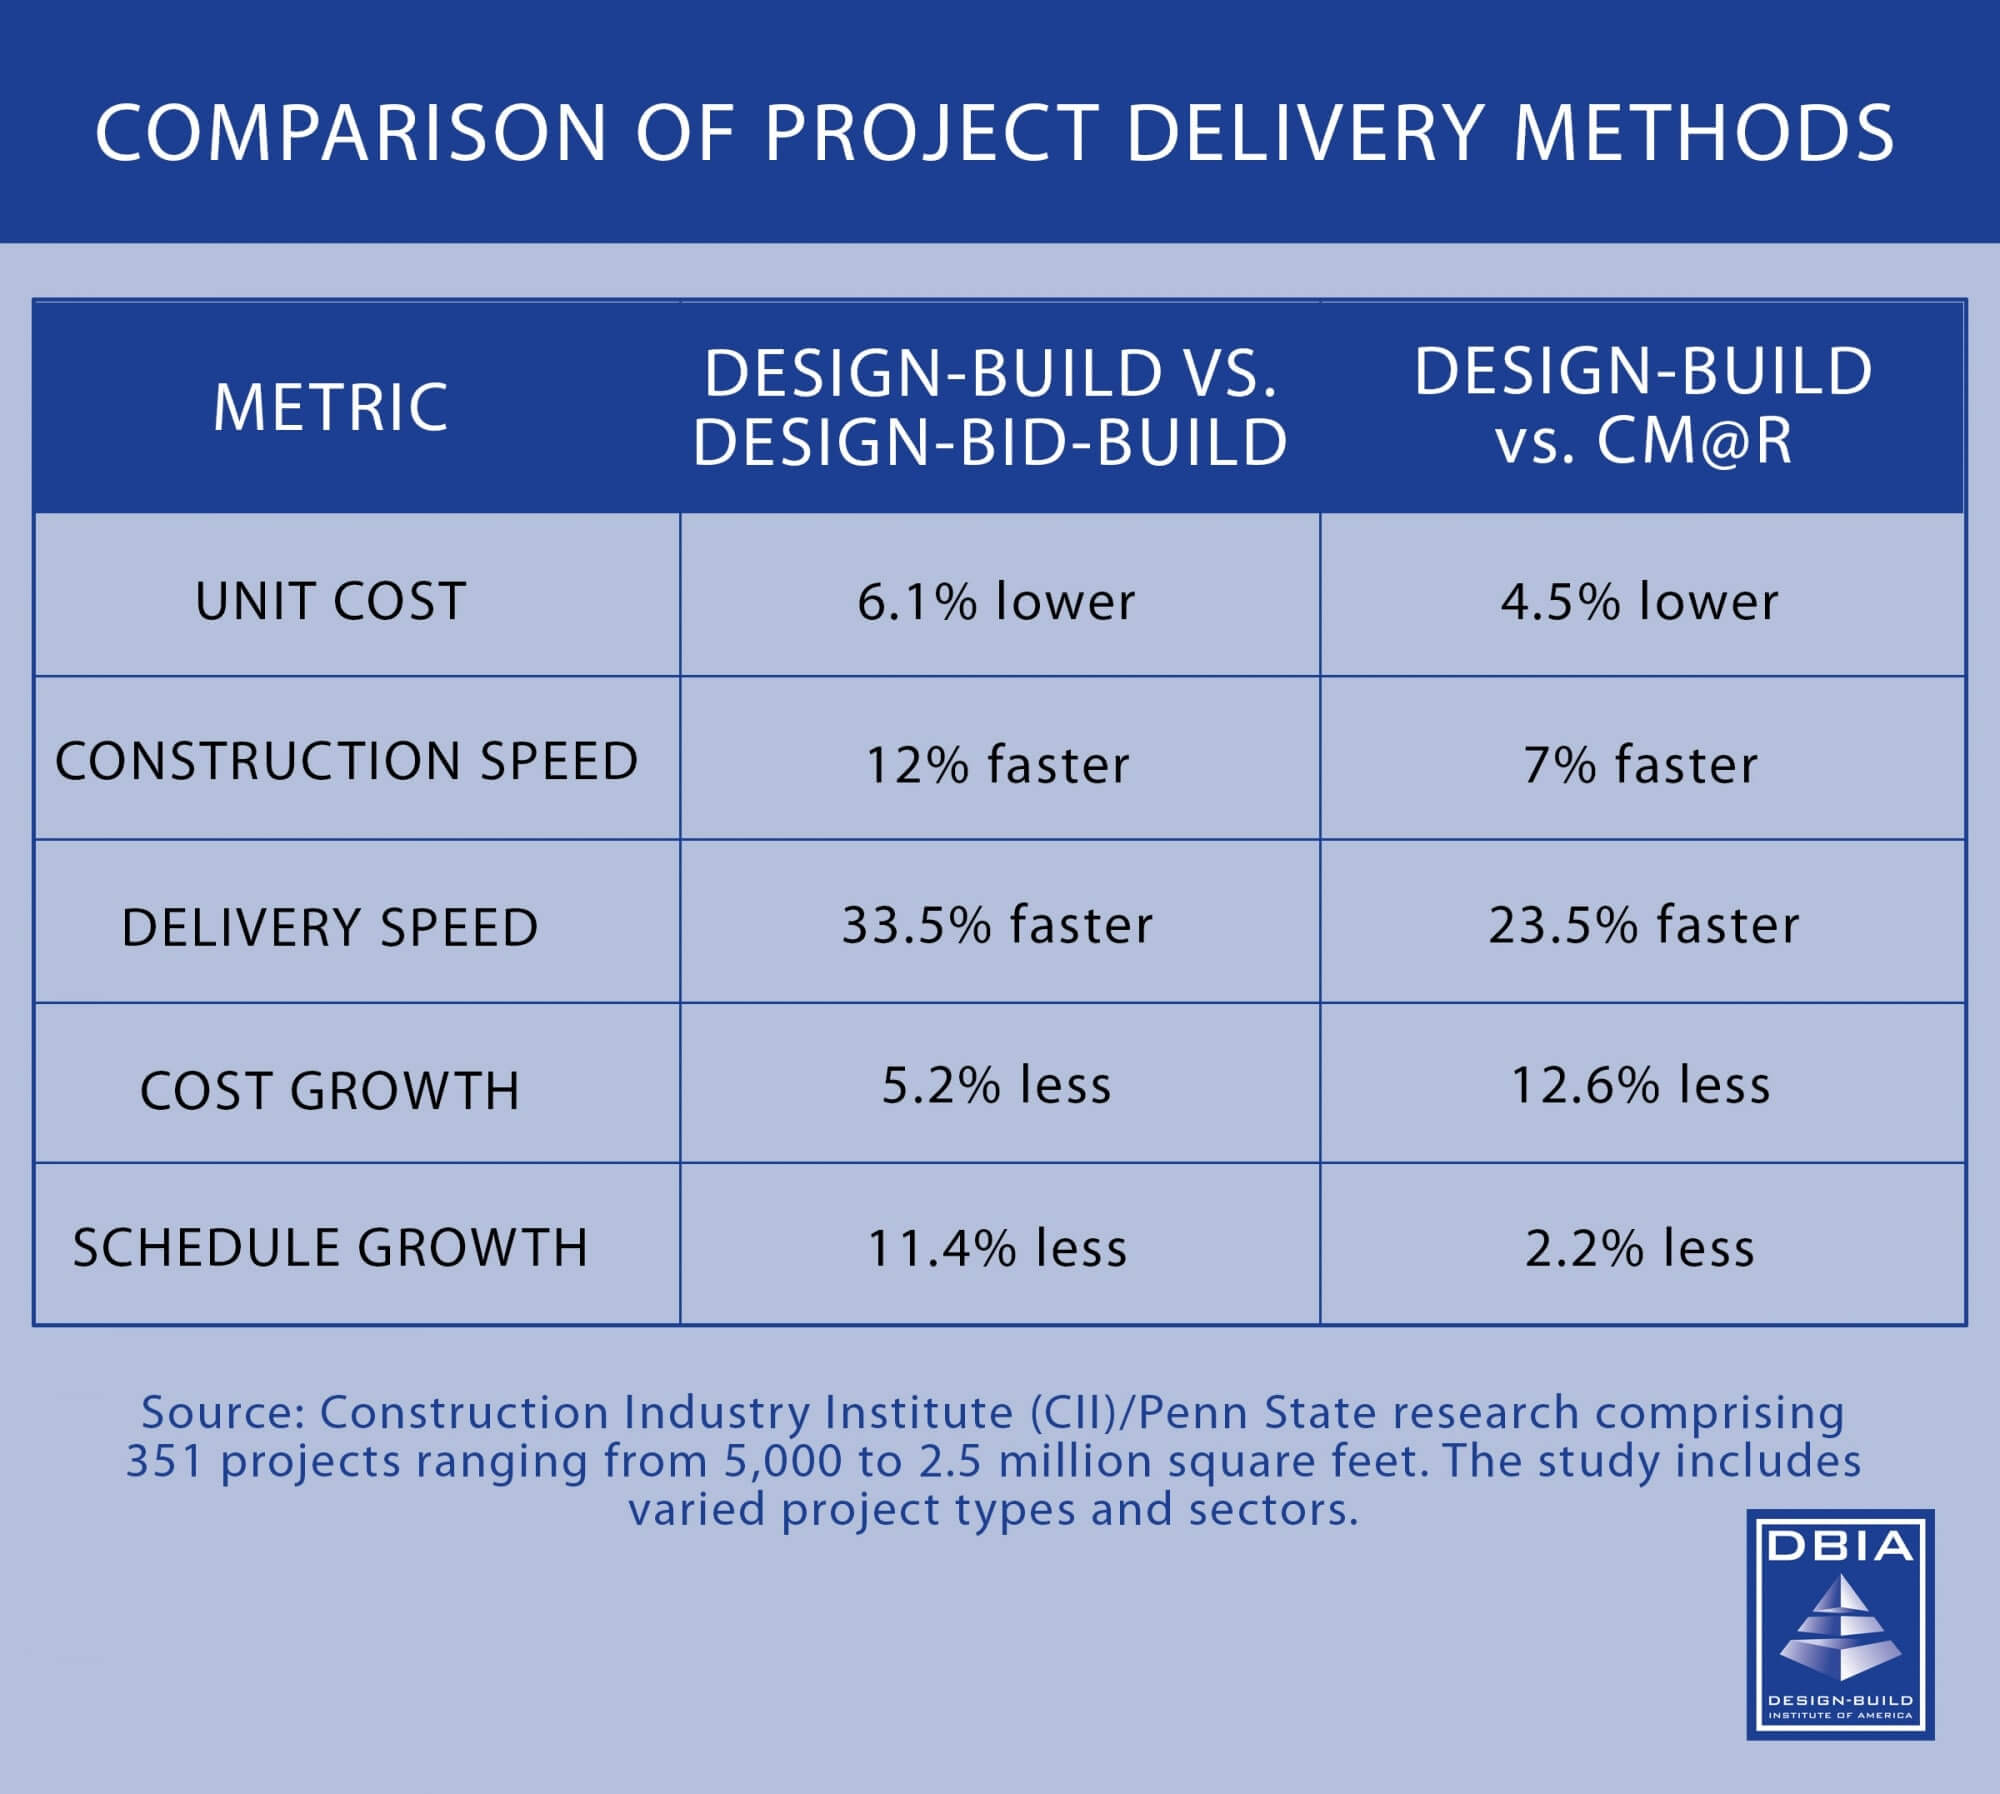 table showing cost comparison of design-build vs design-bid-build